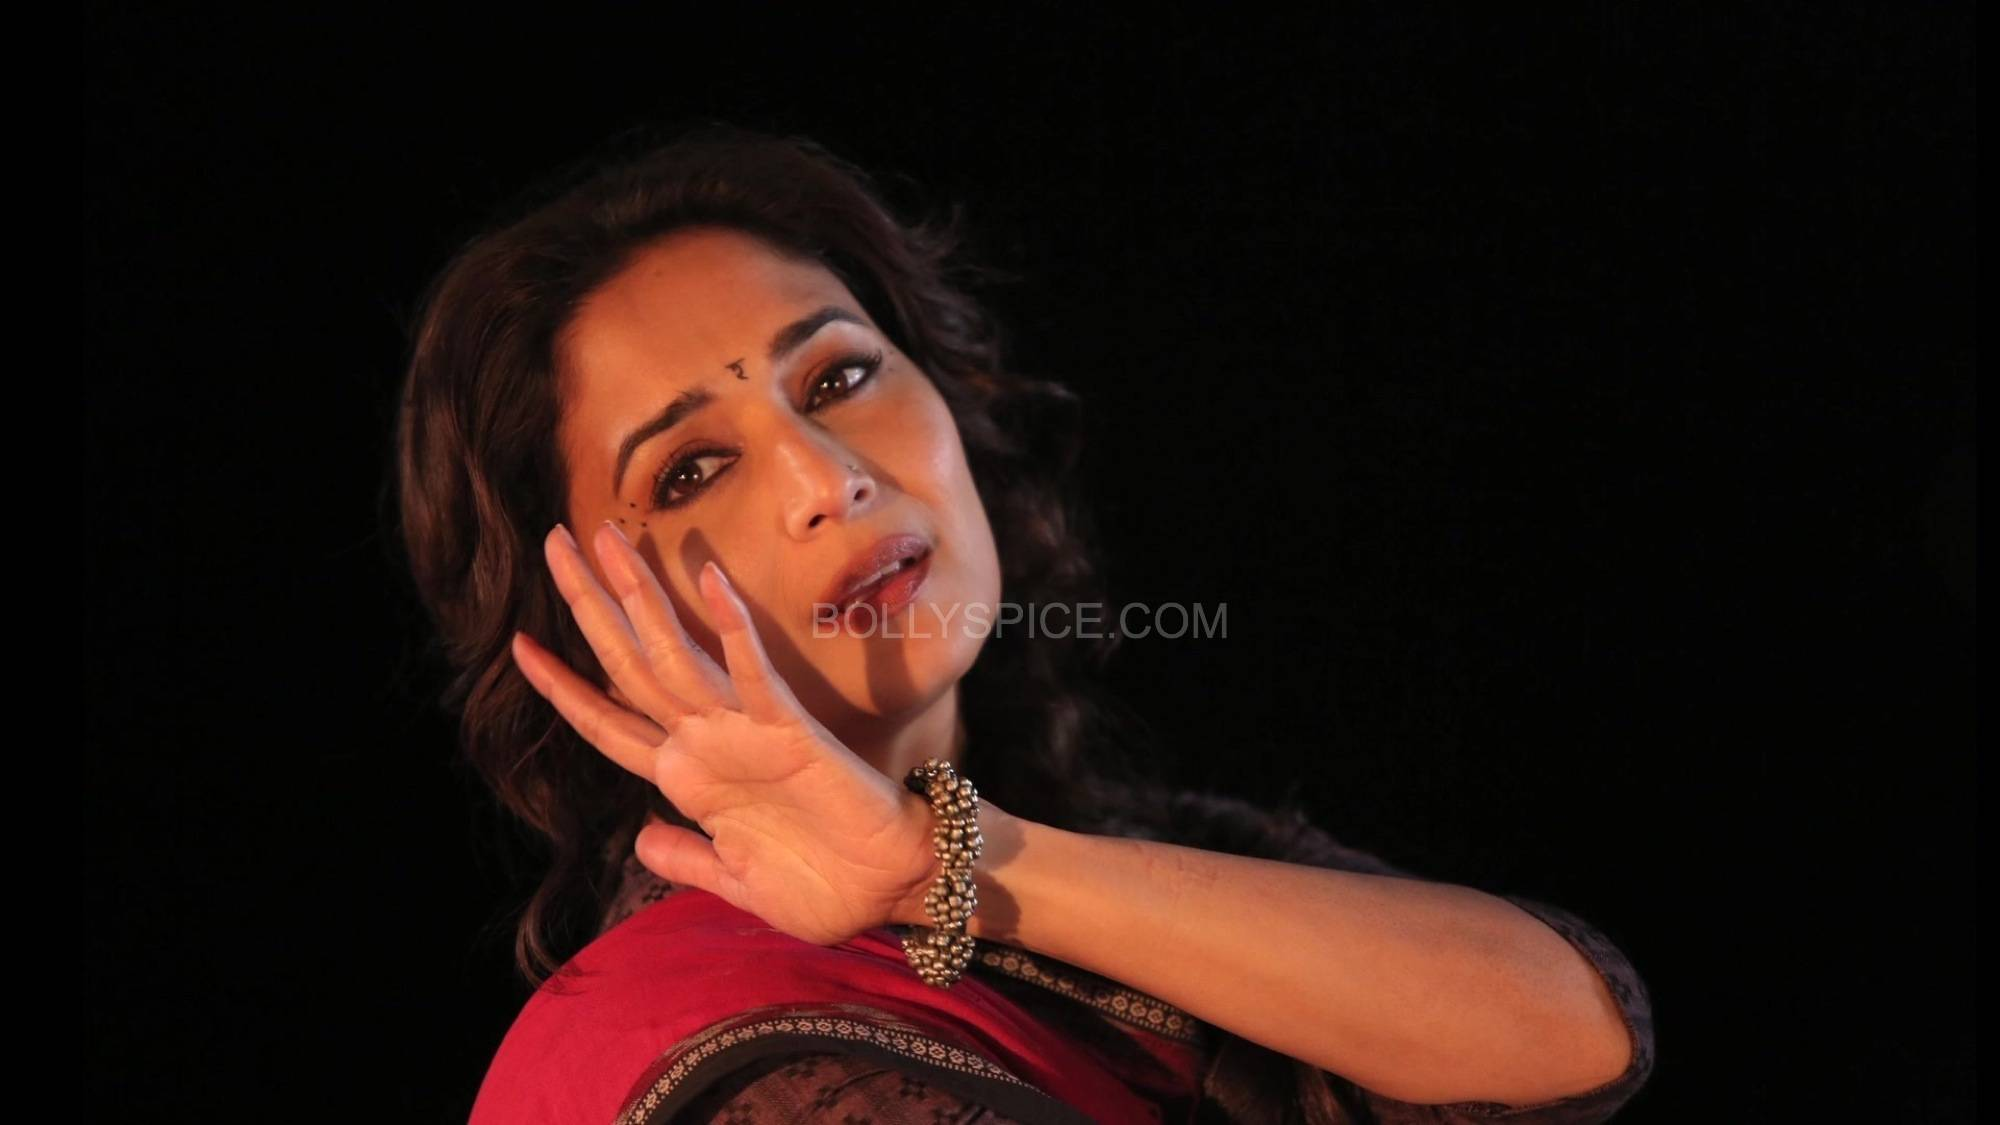 dheemidheemigulaabgang2 The magic of Madhuri in Dheemi Dheemi   Gulaab Gang